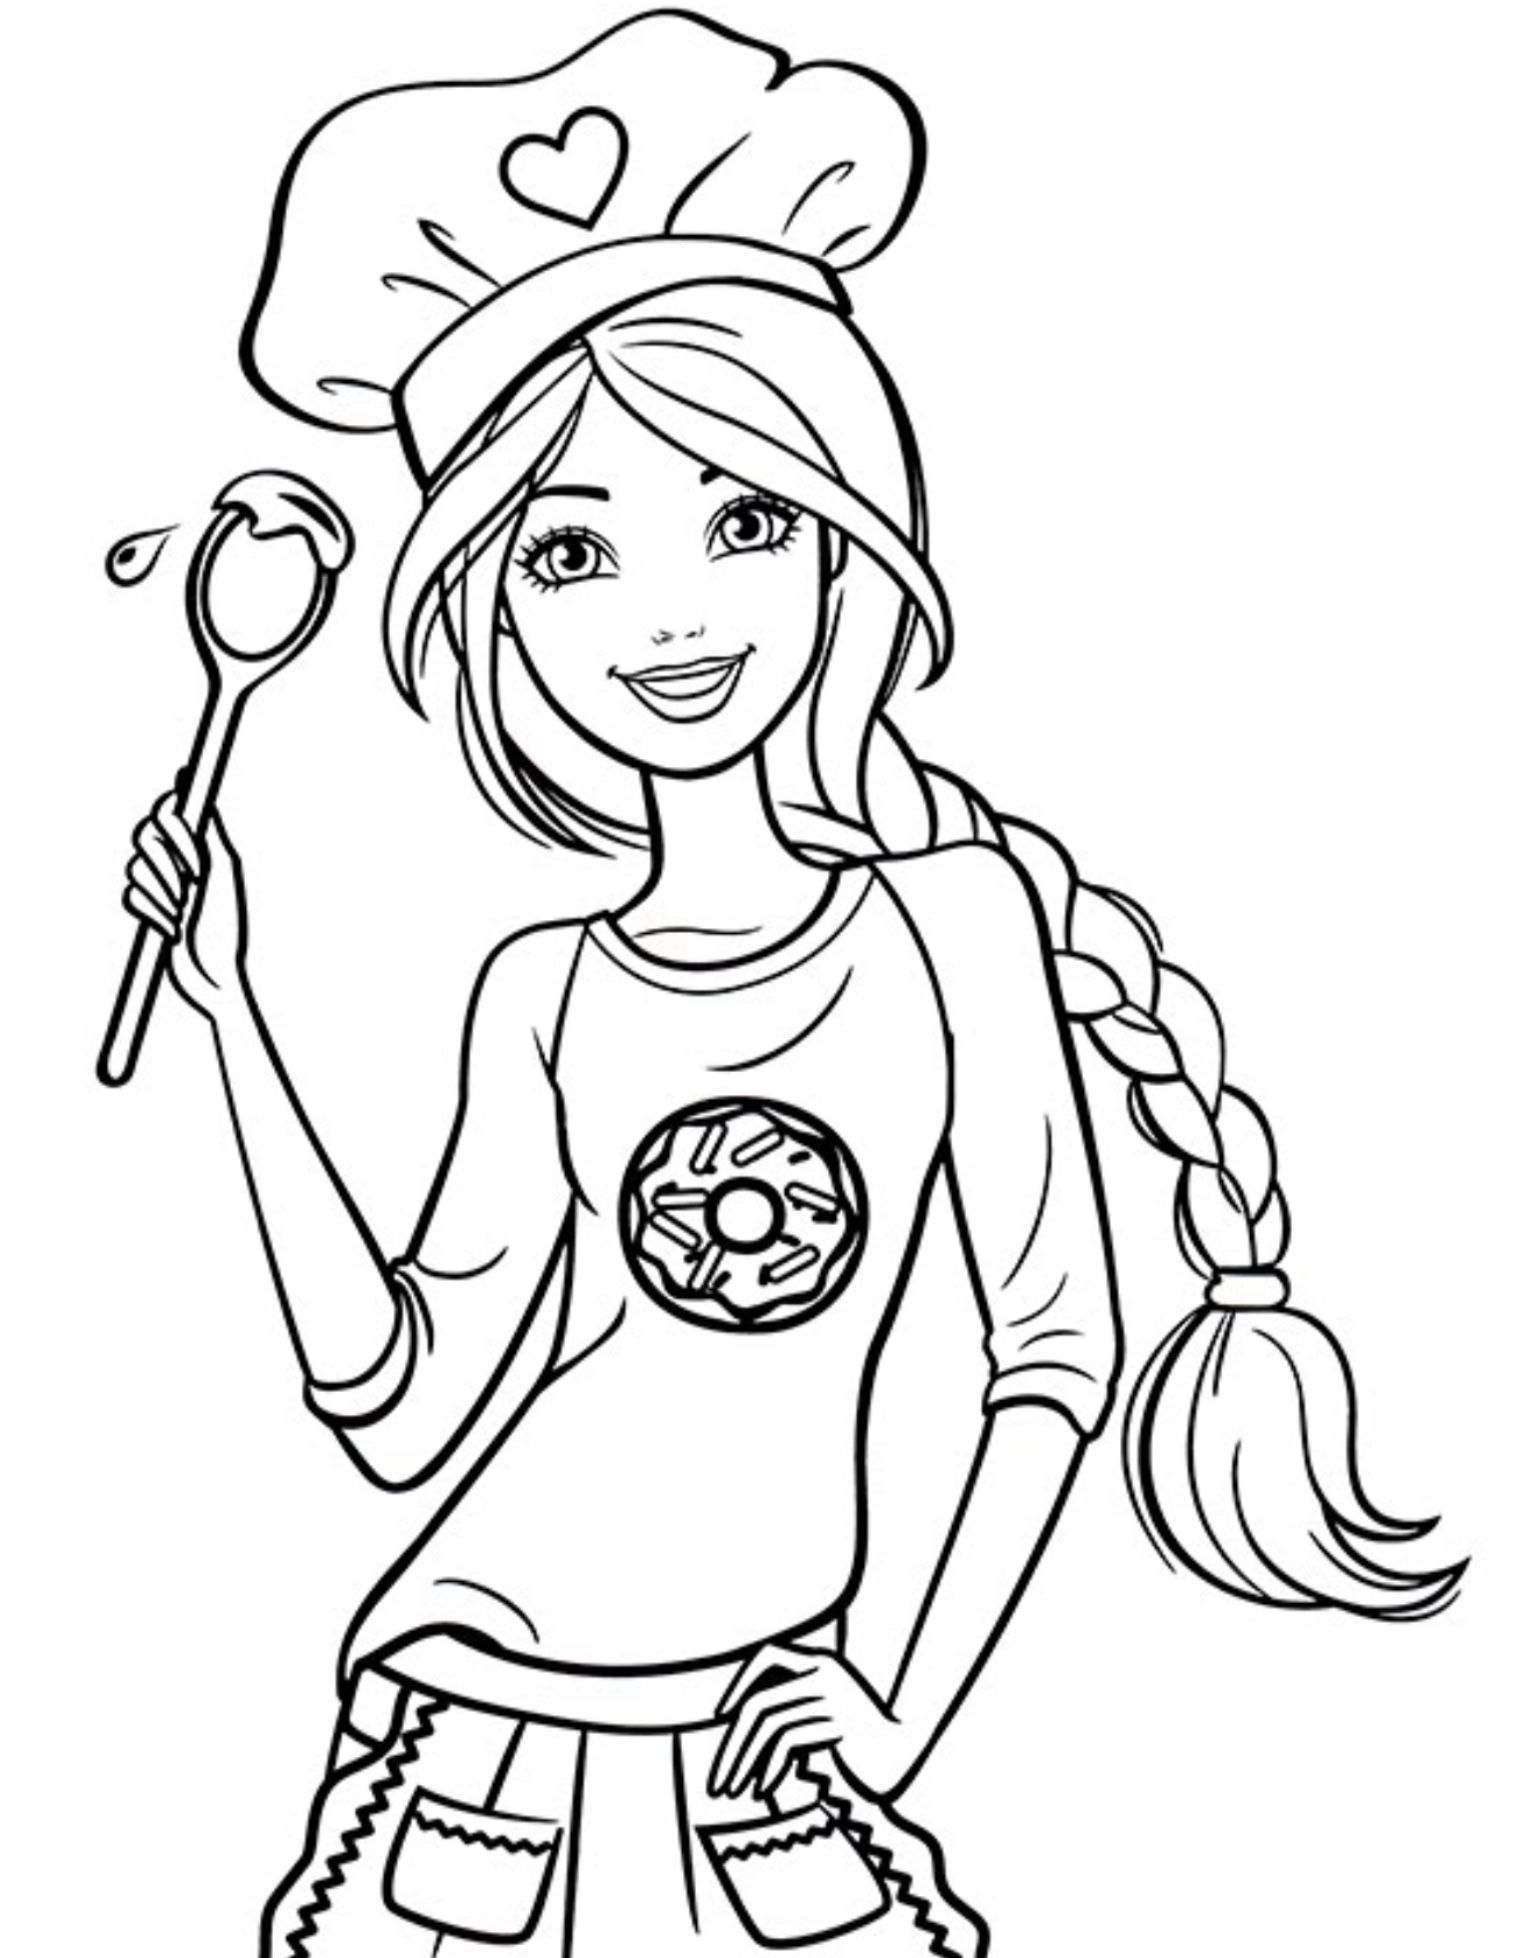 coloring page barbie barbie coloring pages for girls toddlers adults print barbie page coloring